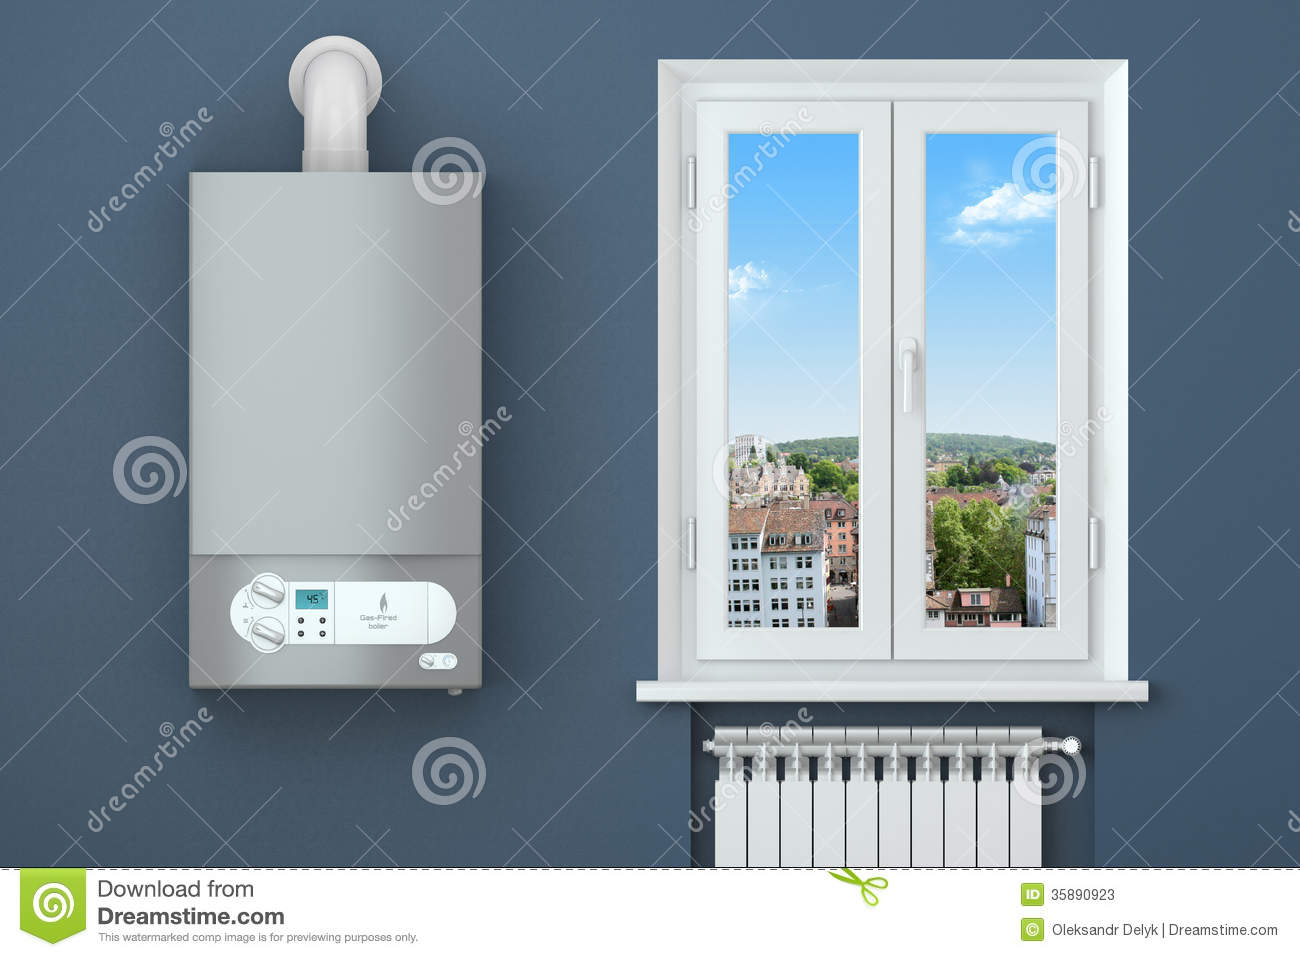 Heating House Gas Boiler Window Heating Radiator Stock